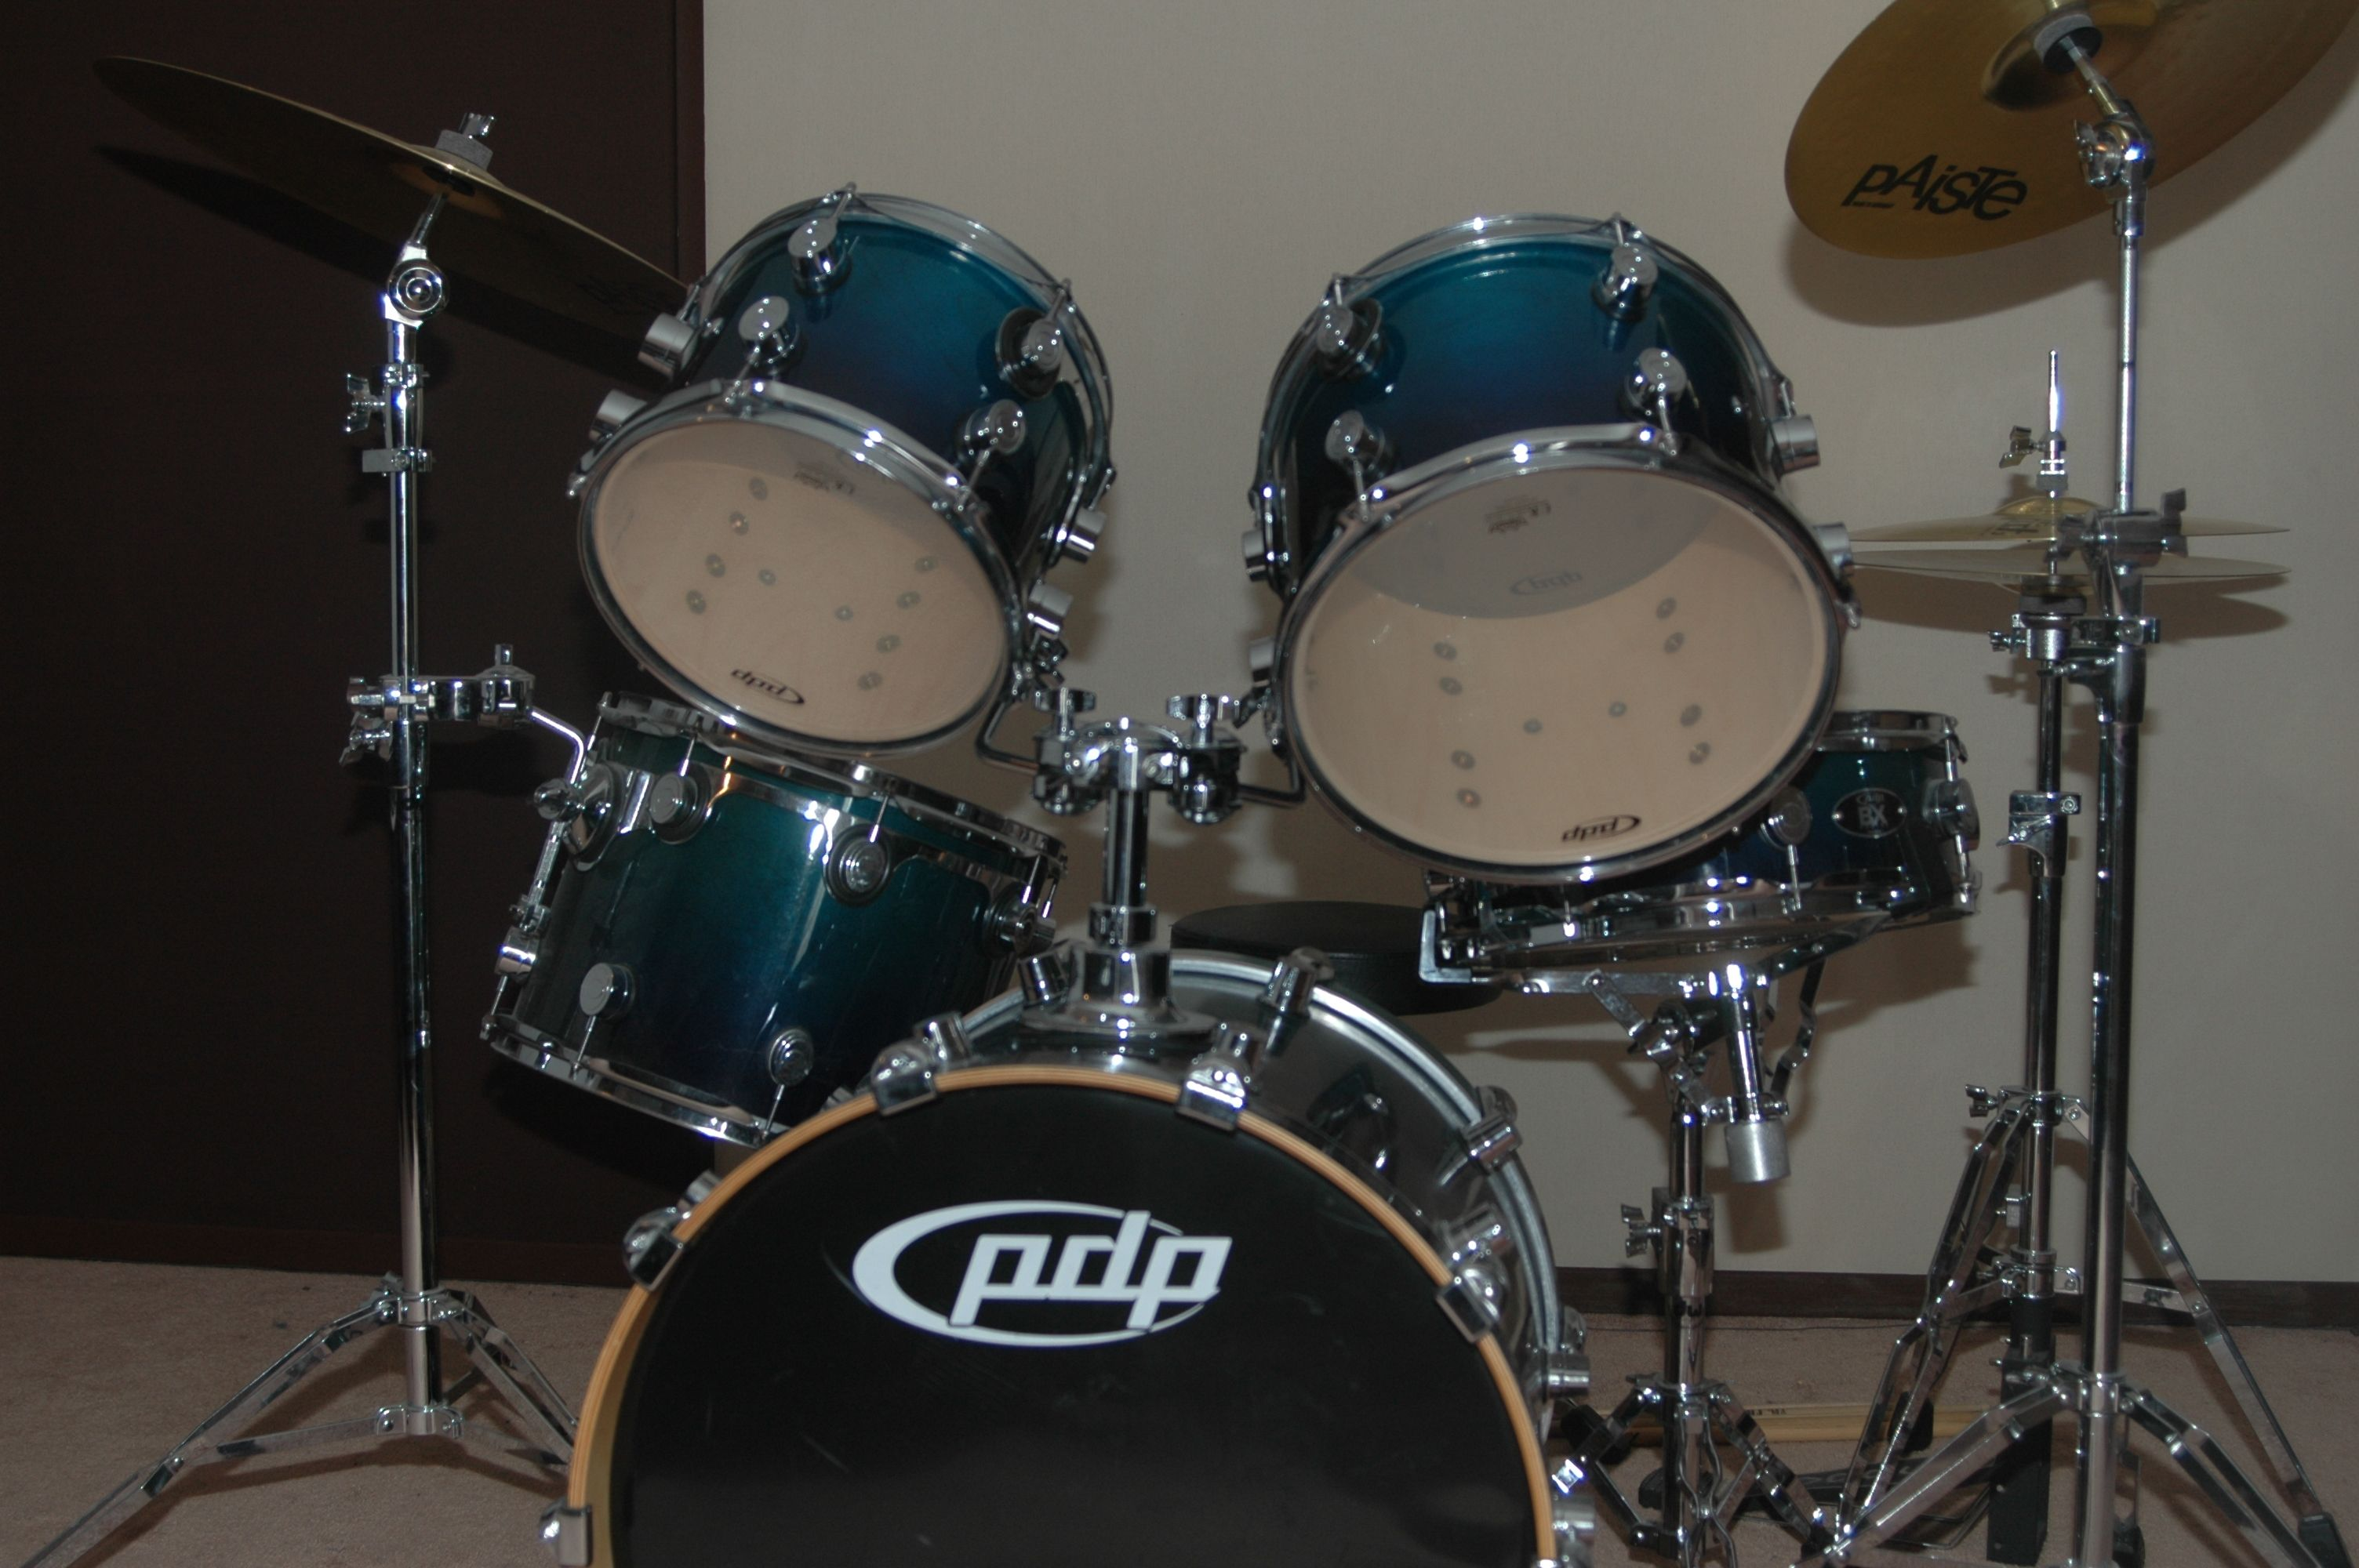 pdp pacific drums and percussion bx image 327545 audiofanzine. Black Bedroom Furniture Sets. Home Design Ideas